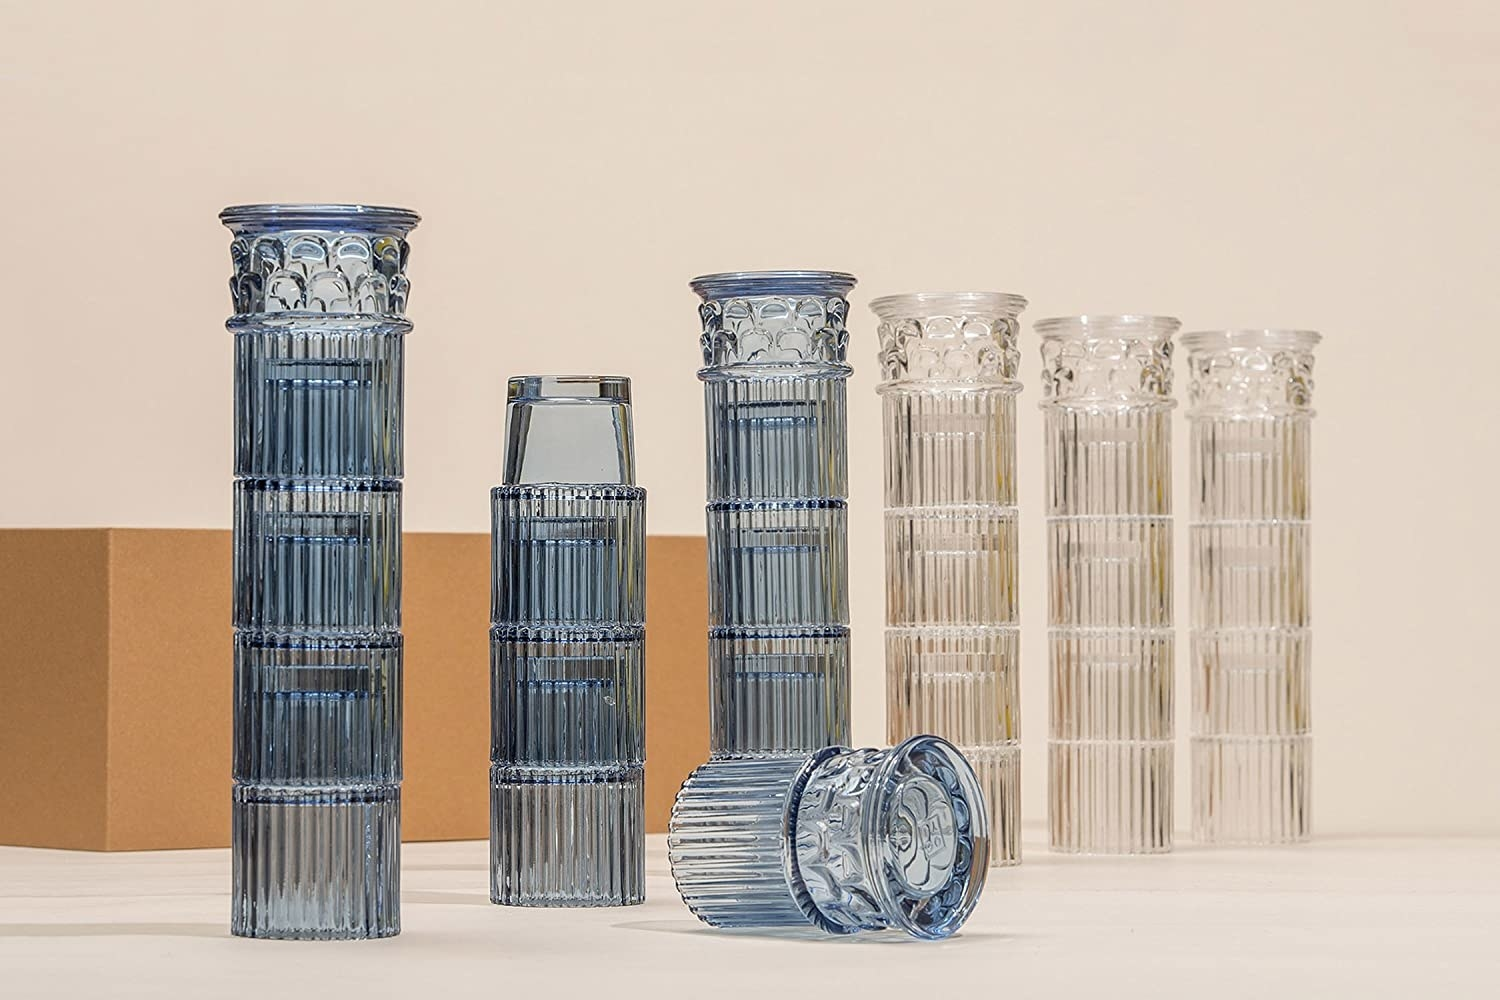 stacked glasses that look like Greek columns